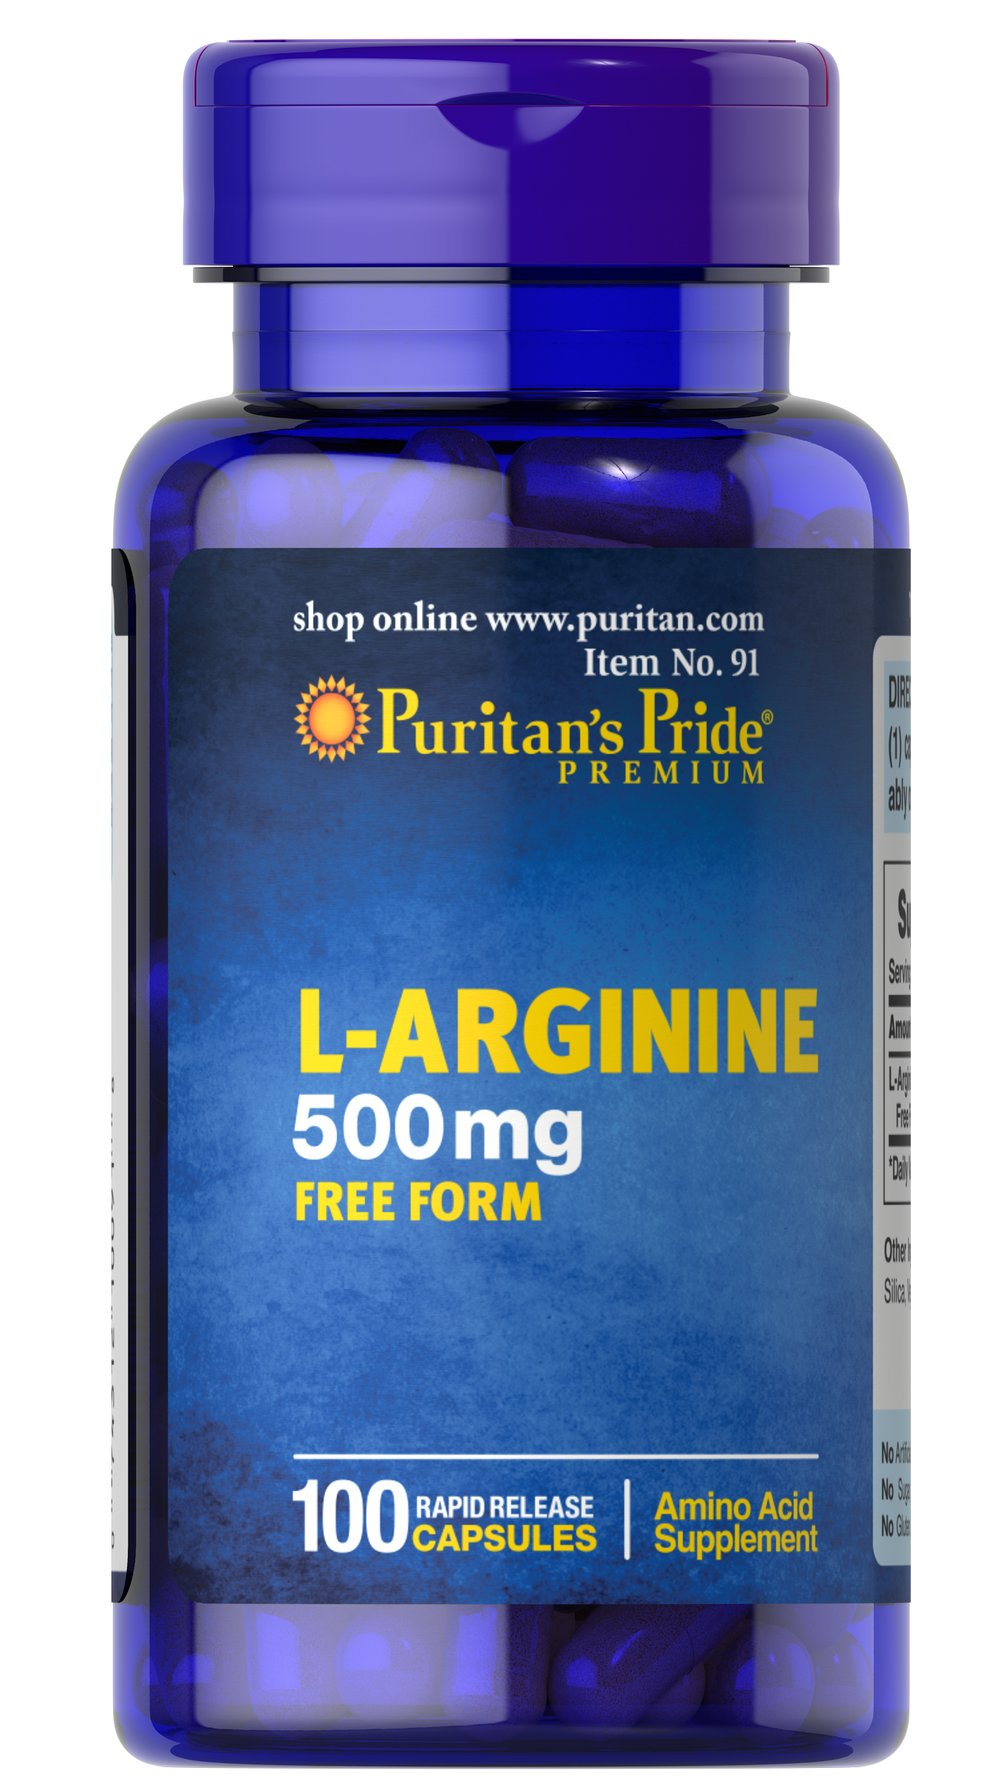 L-Arginine 500 mg <p>Arginine is one of 20 amino acids, the building blocks of protein.** Arginine can  serve as a source of energy, and is involved in various pathways throughout the body.** Arginine supports the effect of exercise and is one of the most important amino acids involved in immune function.** Adults can take one caplet daily. </p> 100 Capsules 500 mg $10.19